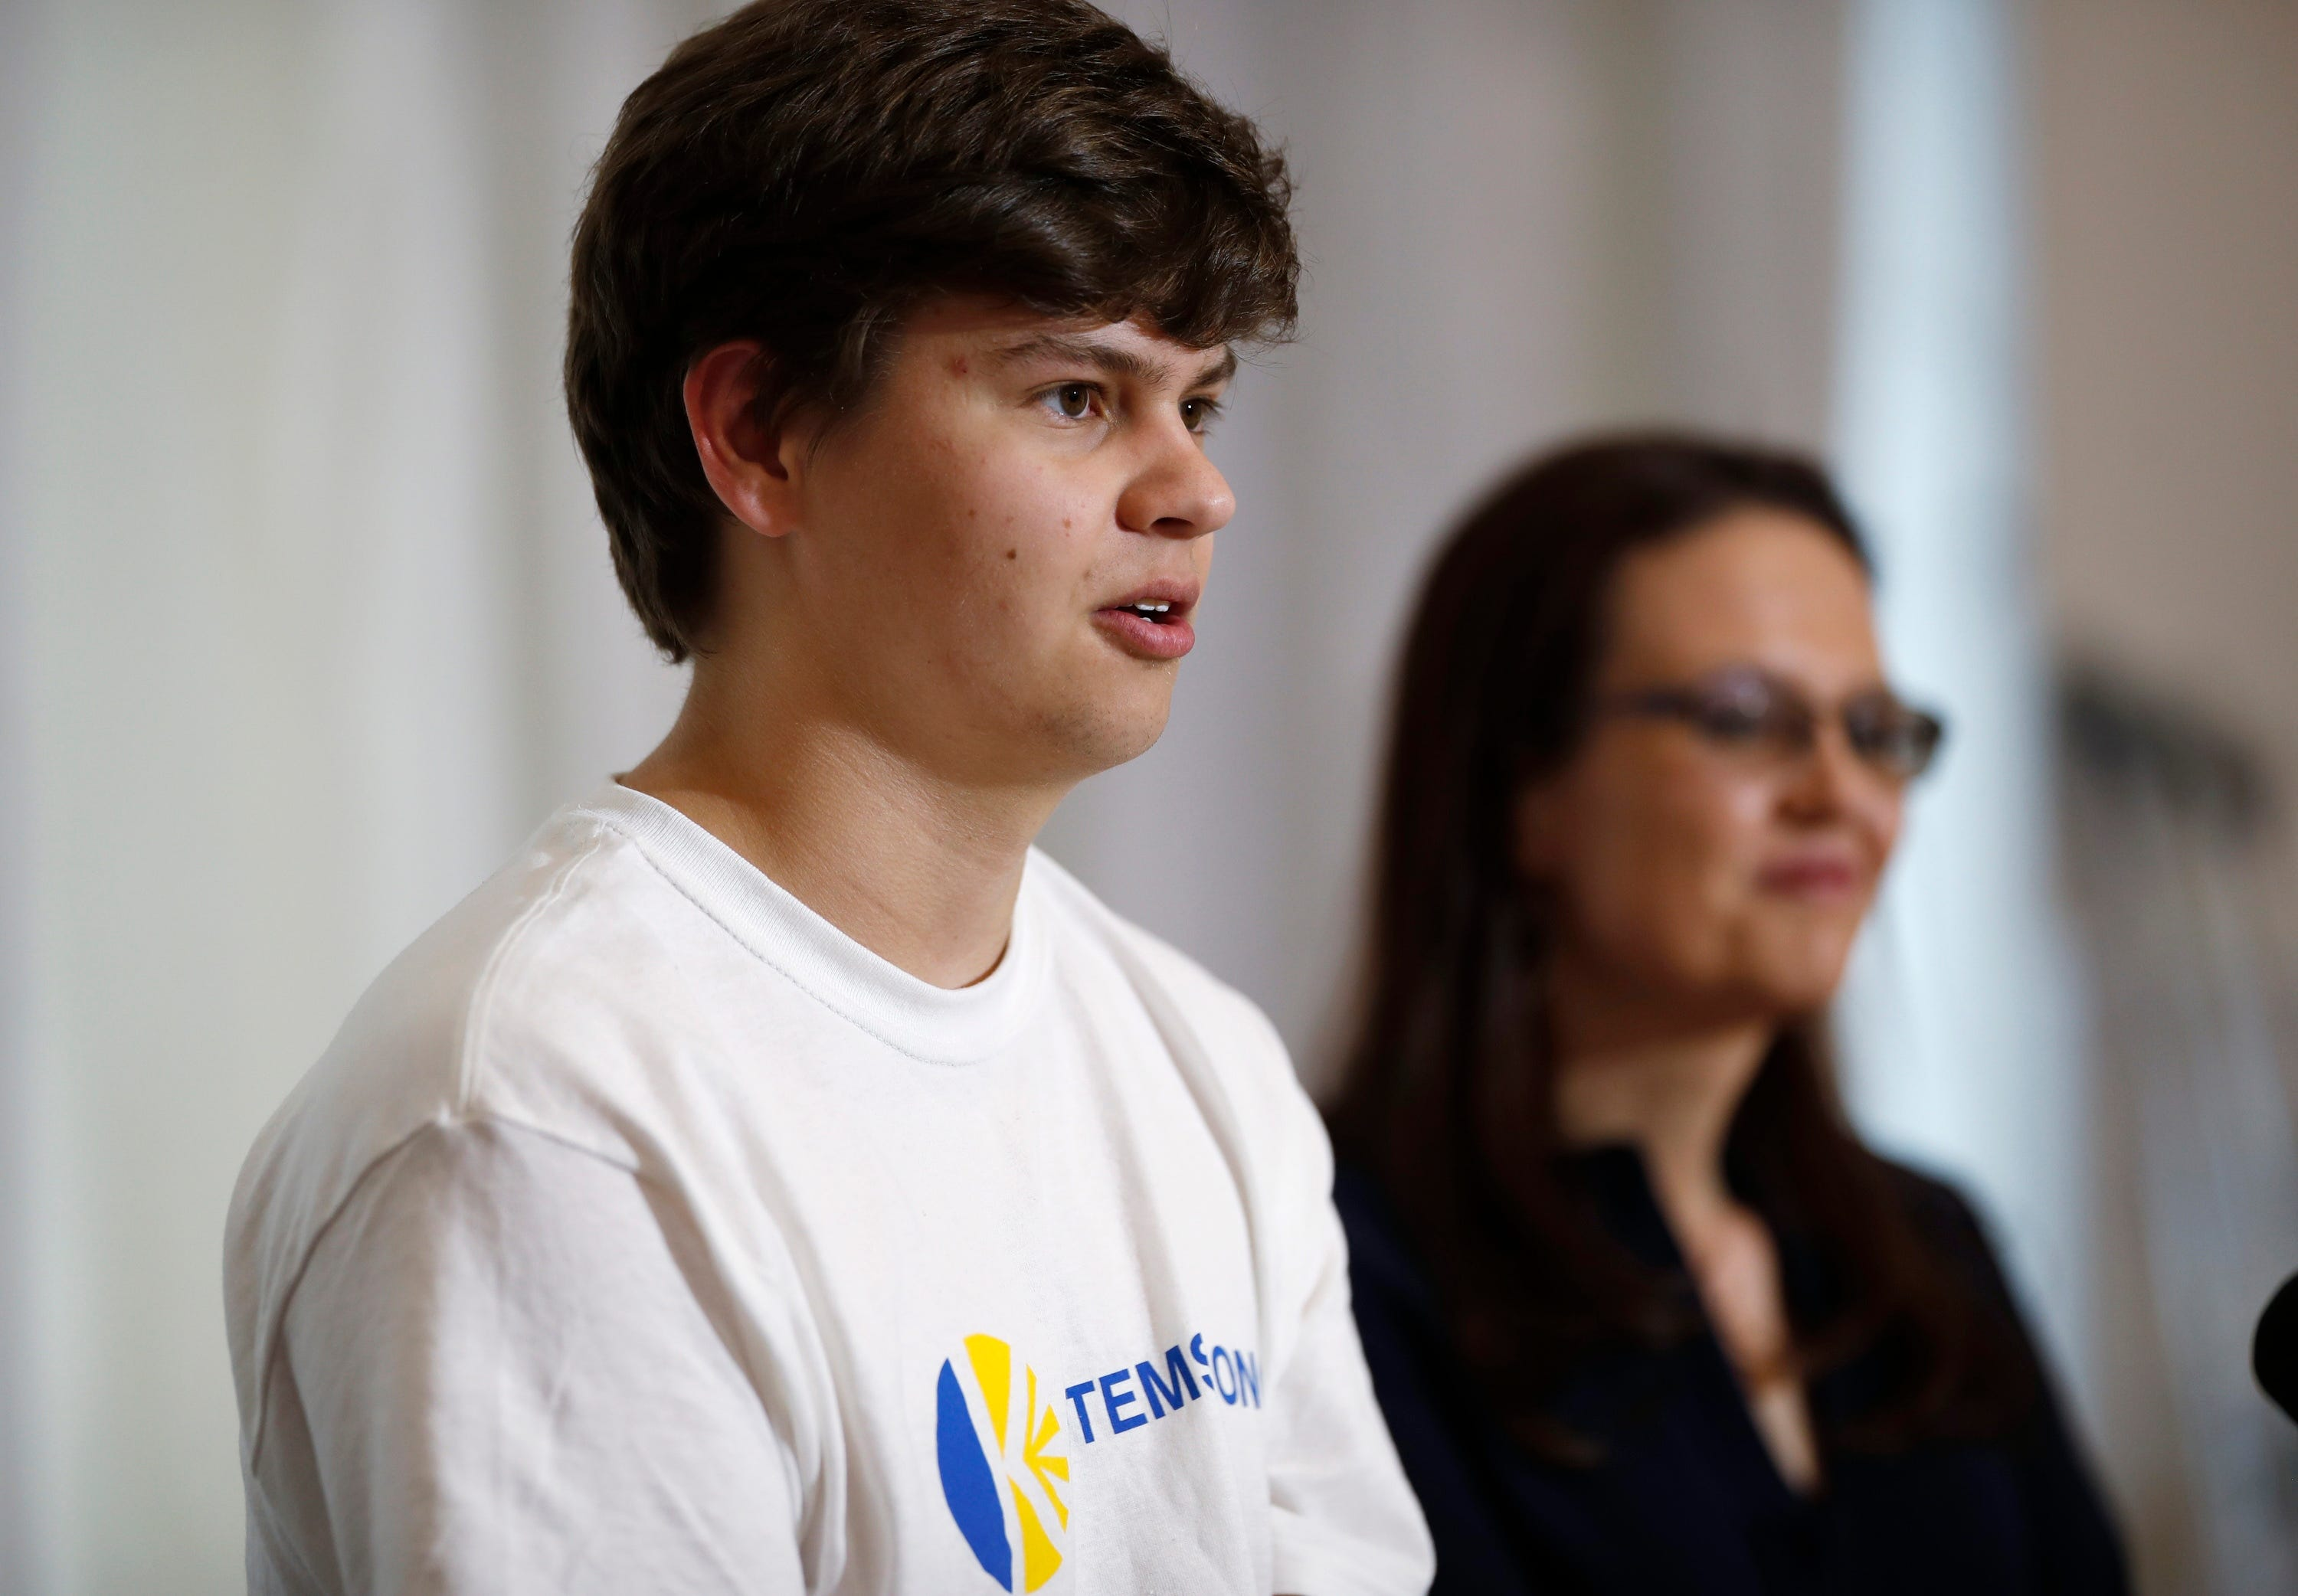 Hero of Colorado school shooting: 'Adrenaline and tunnel vision are a crazy thing'